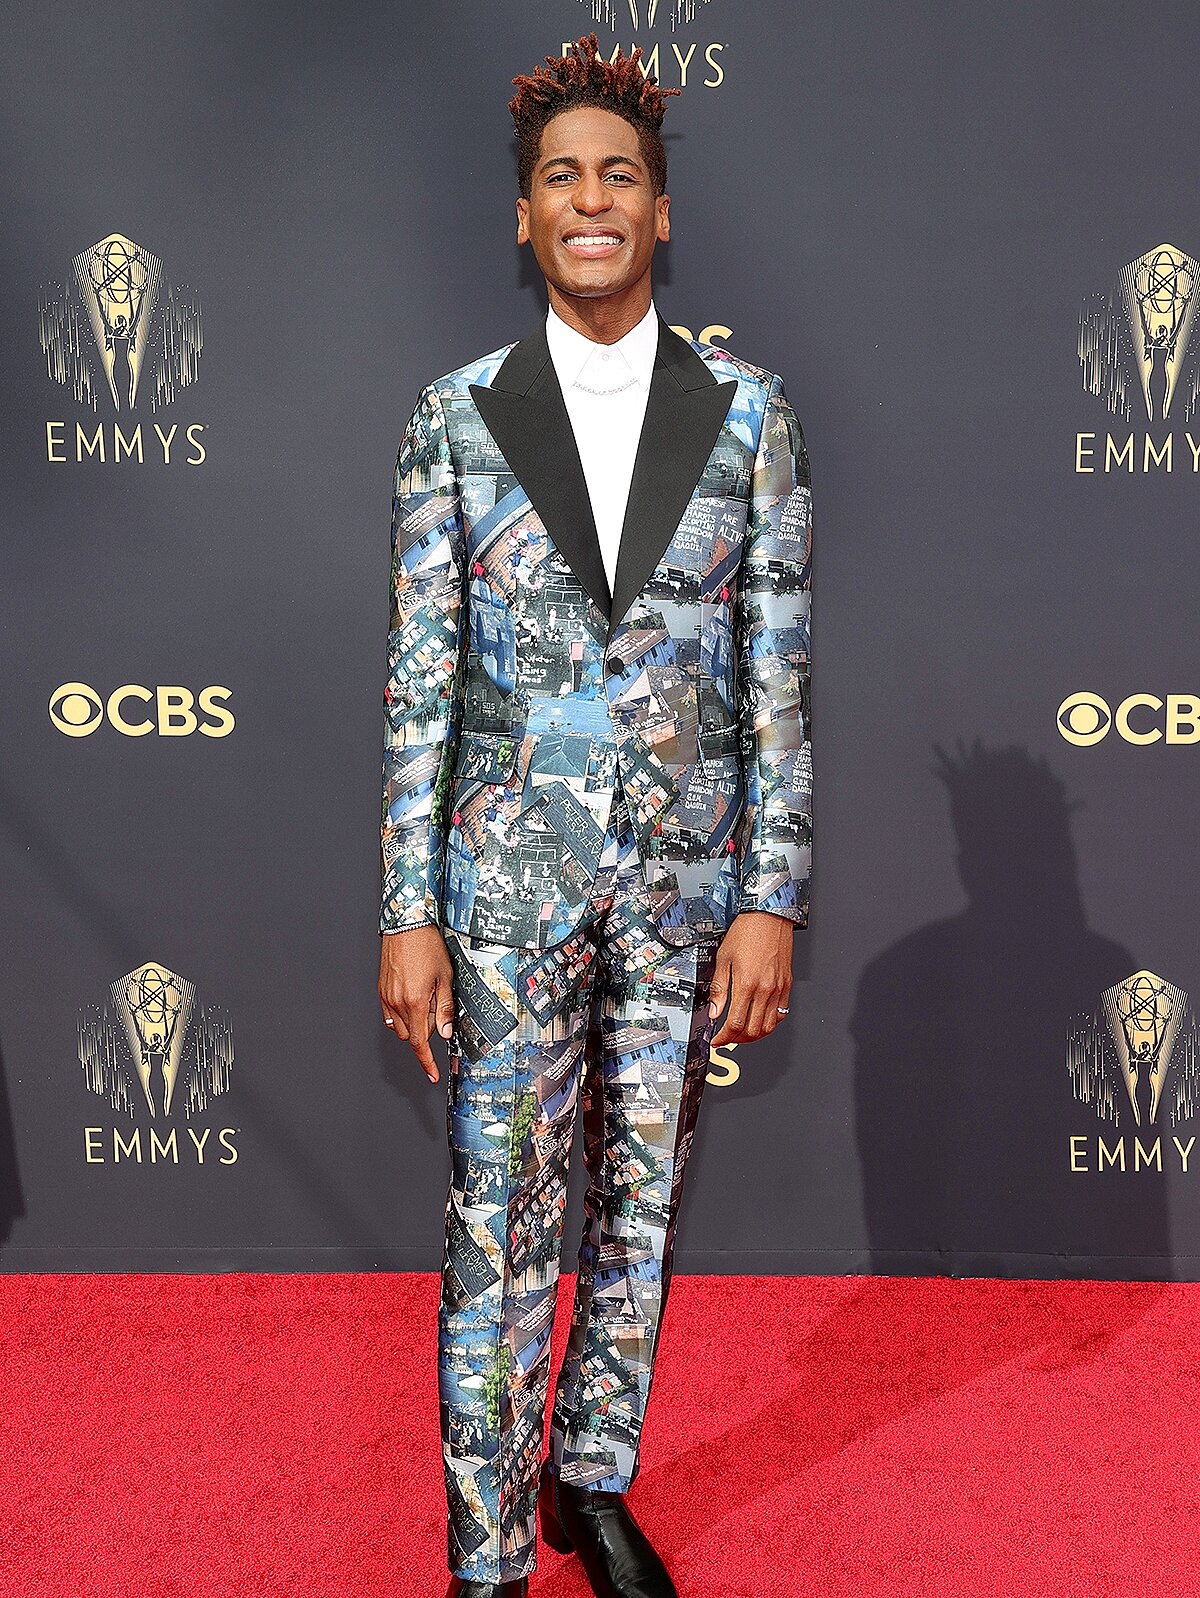 The Best Men's Fashion on the 2021 Emmys Red Carpet [PHOTOS] | PEOPLE.com